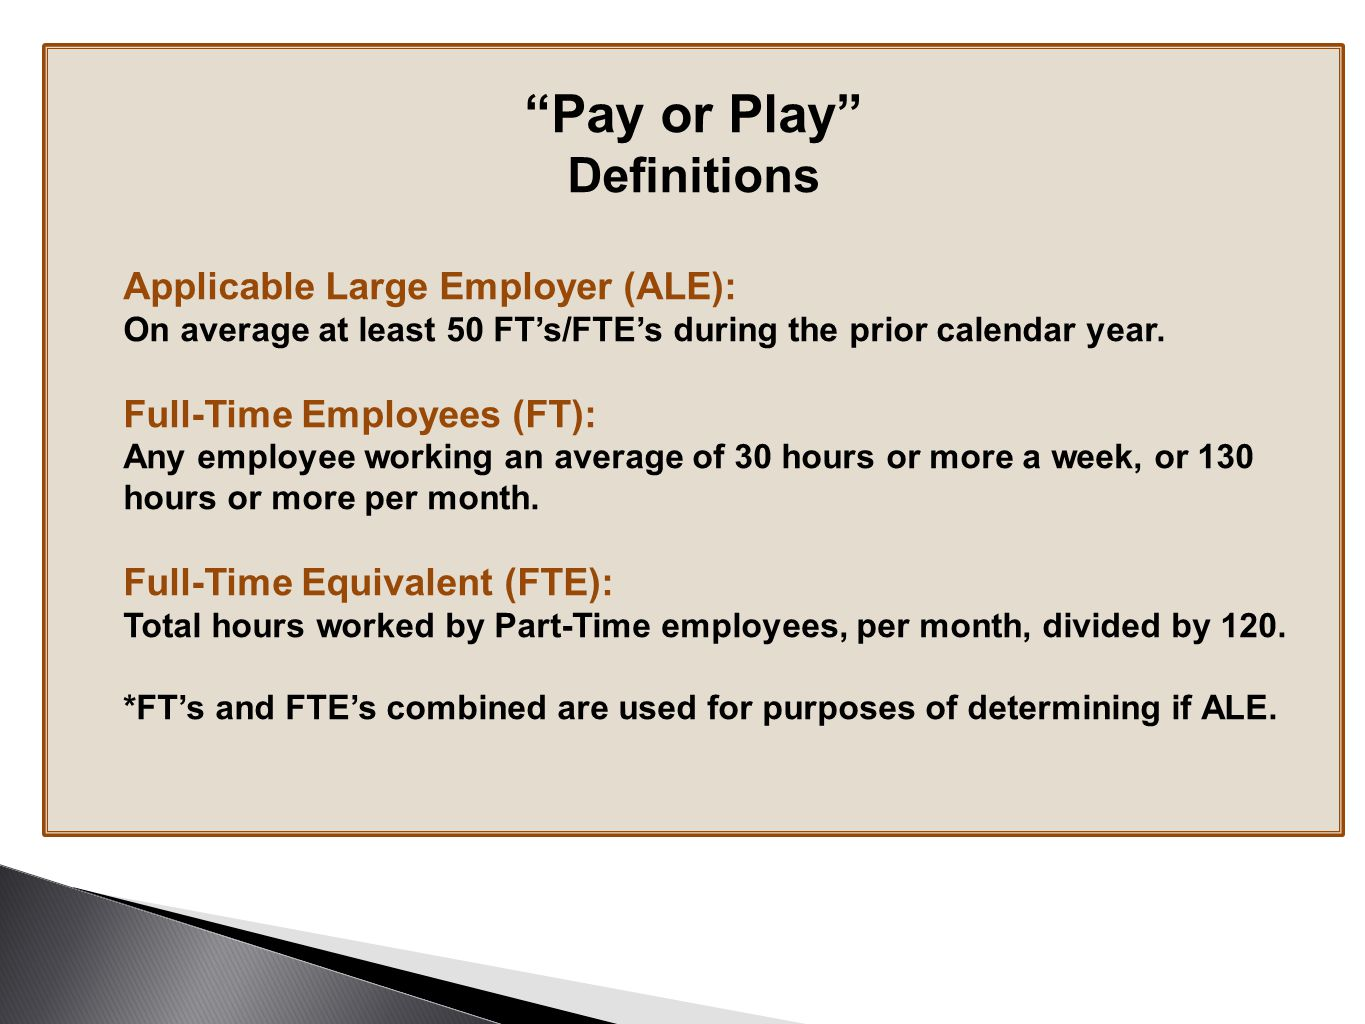 Pay or Play Definitions Applicable Large Employer (ALE): On average at least 50 FT's/FTE's during the prior calendar year.